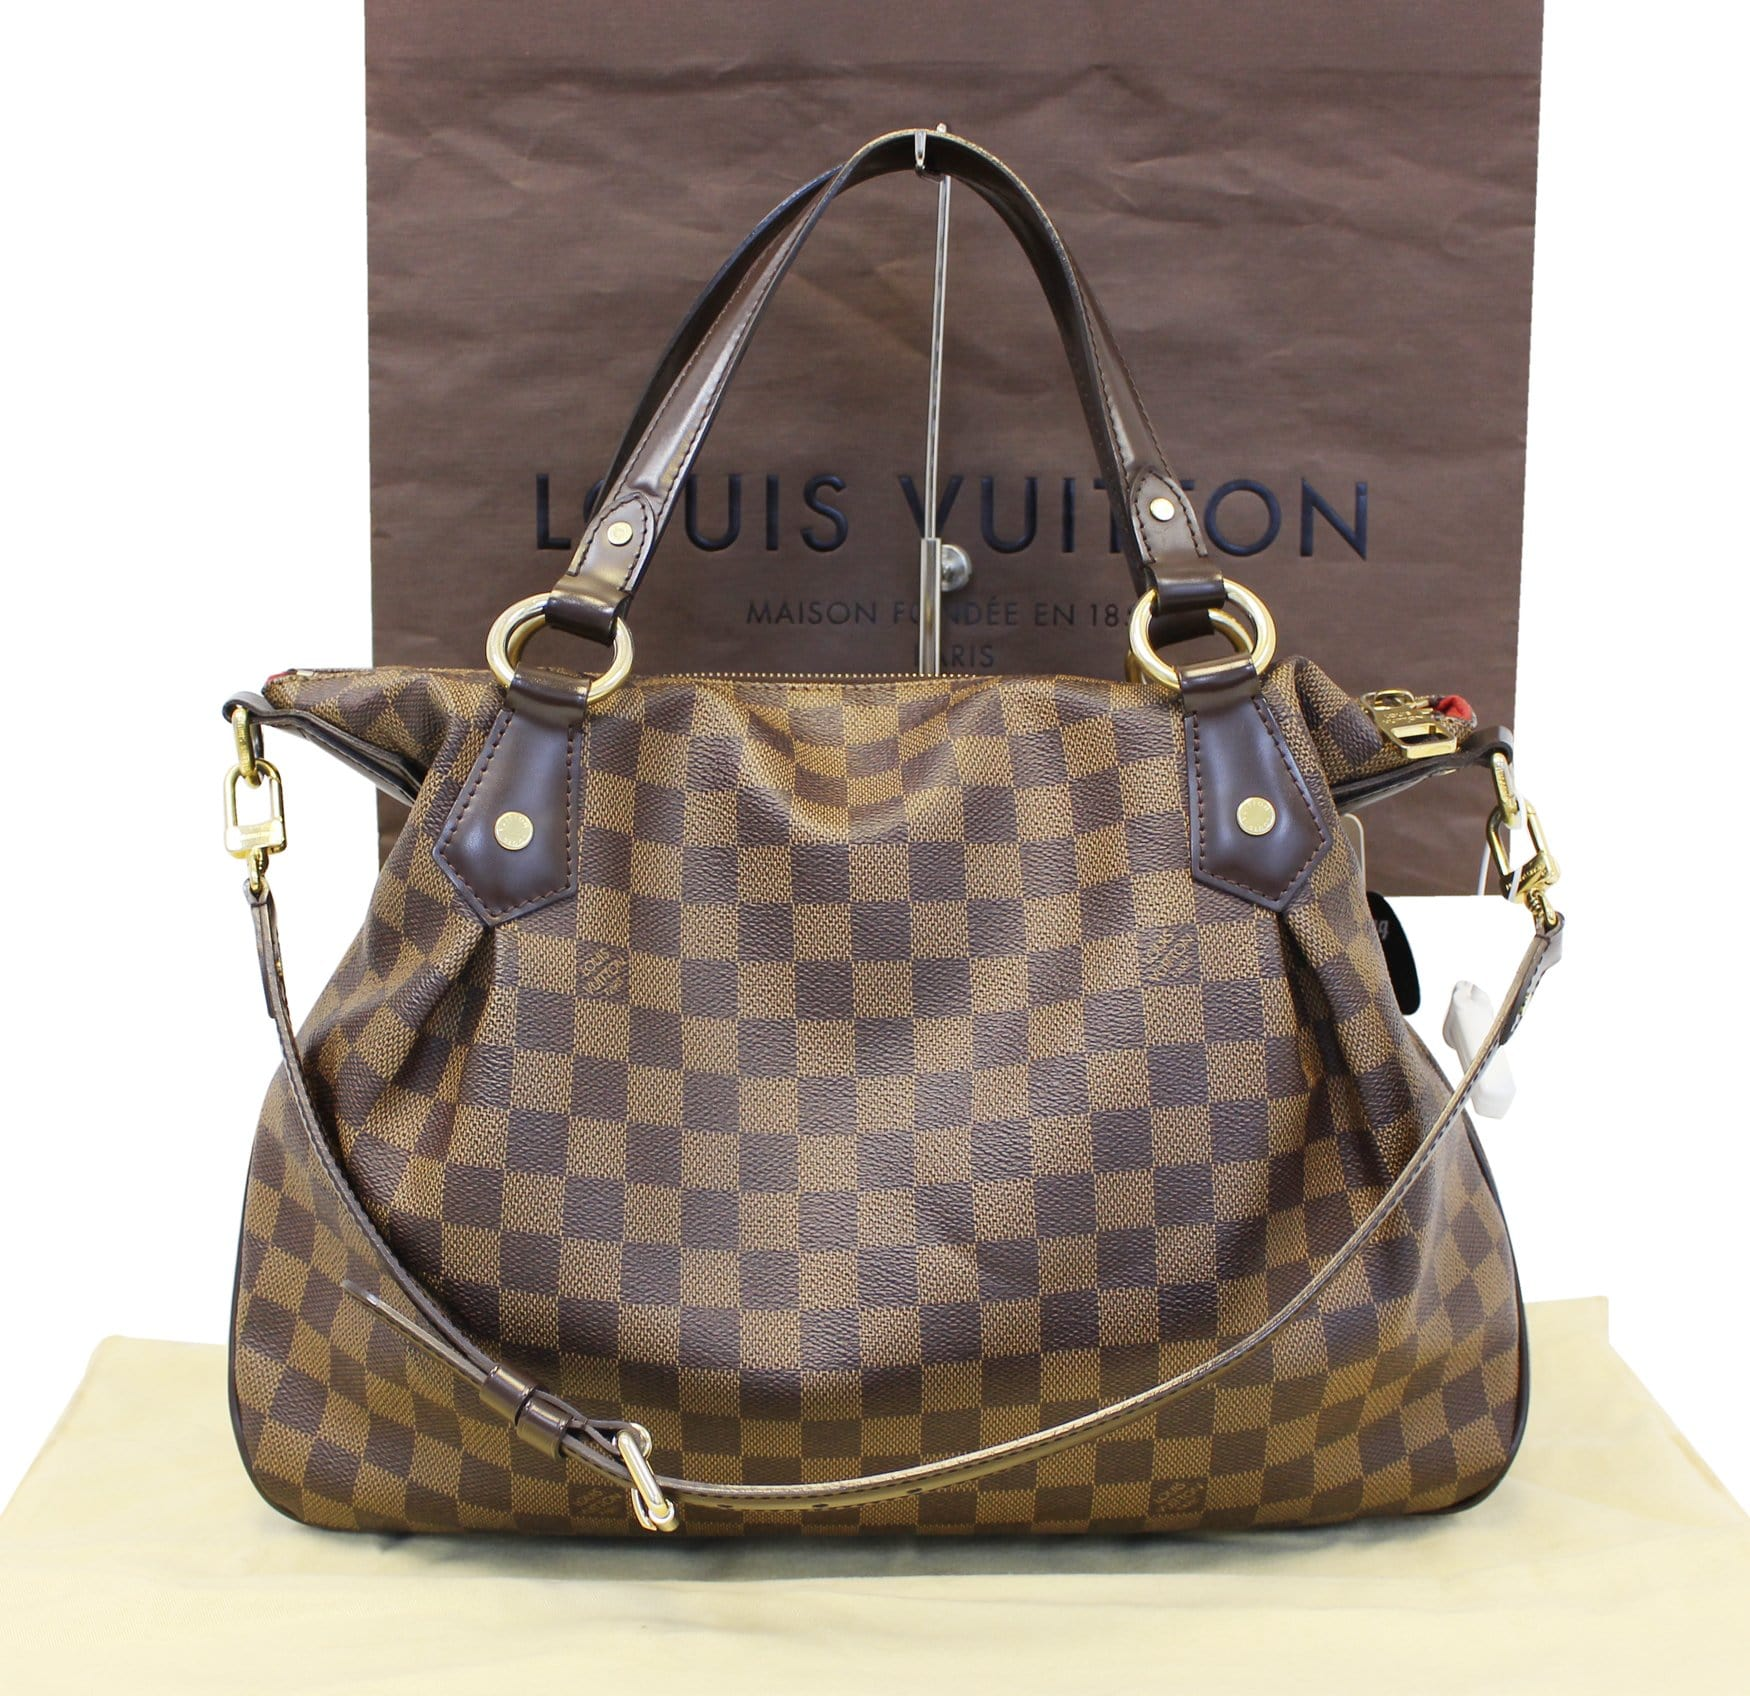 898577642052 Louis Vuitton Evora MM Damier Ebene Tote Shoulder Bag